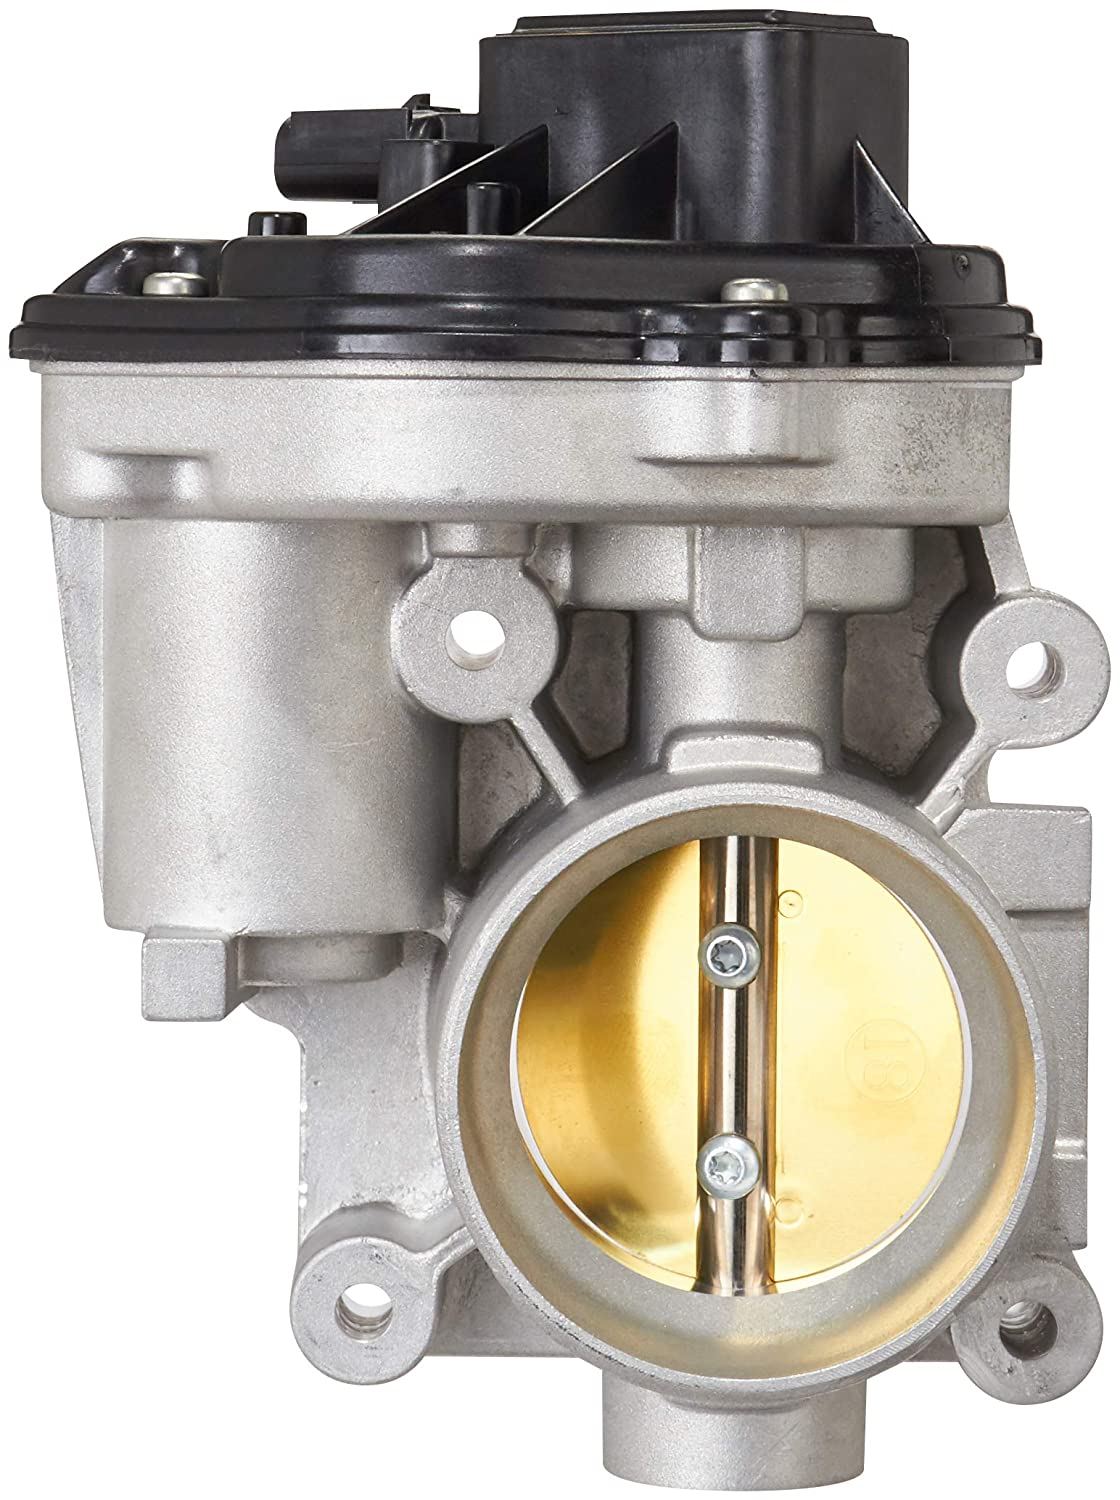 Spectra Premium TB1054 Fuel Injection Throttle Body Assembly